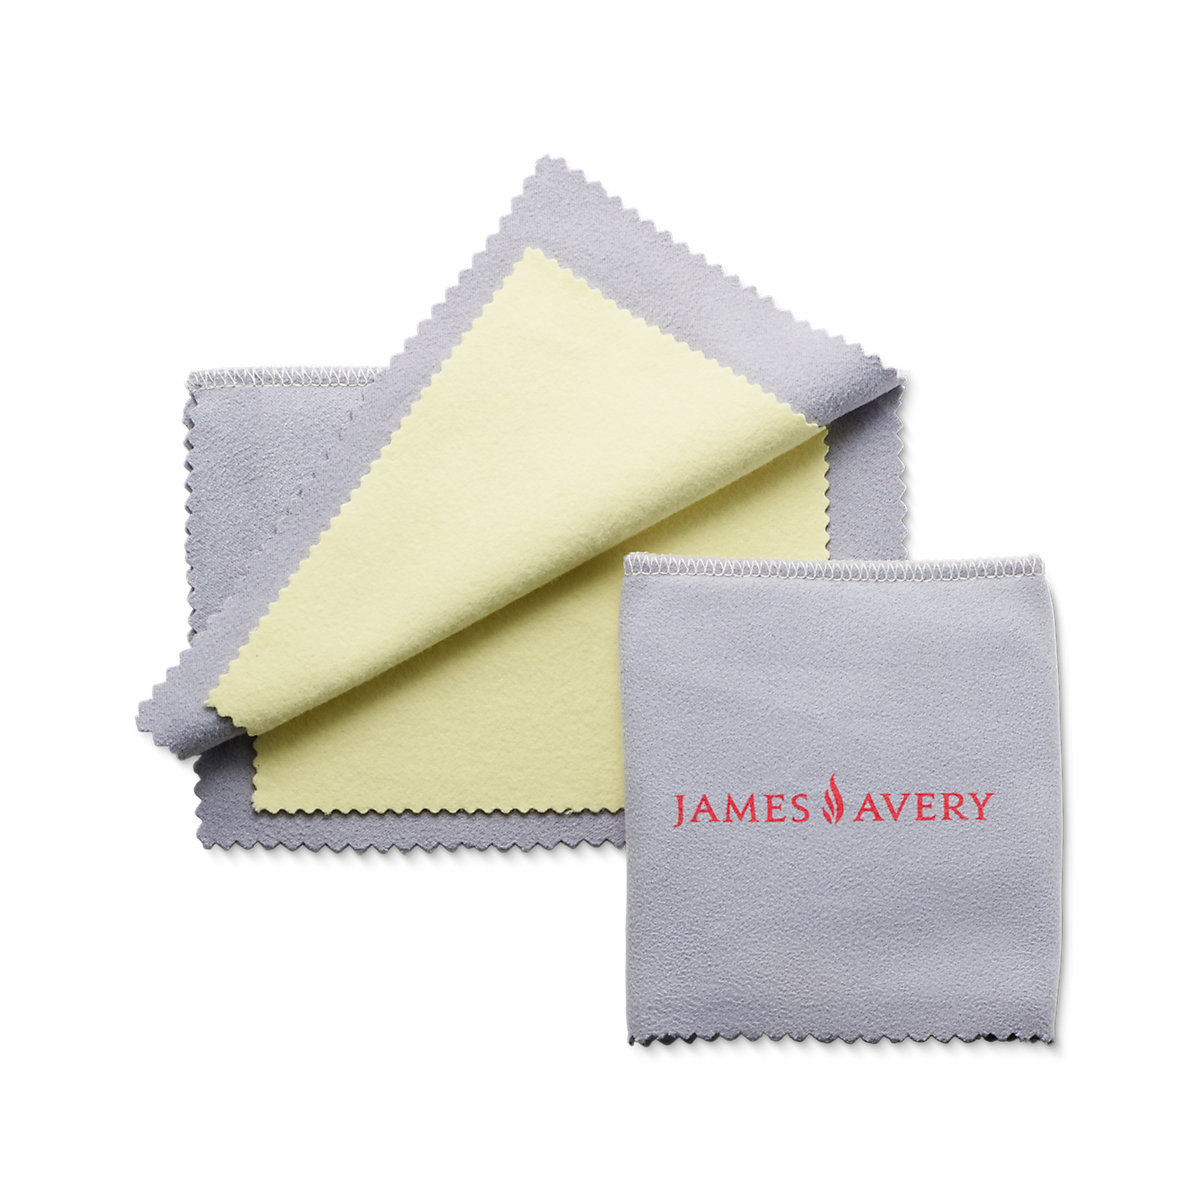 /& More Silver Rouge Polishing Cloth 6 x 8 for Shiny Finish on Jewelry Gold